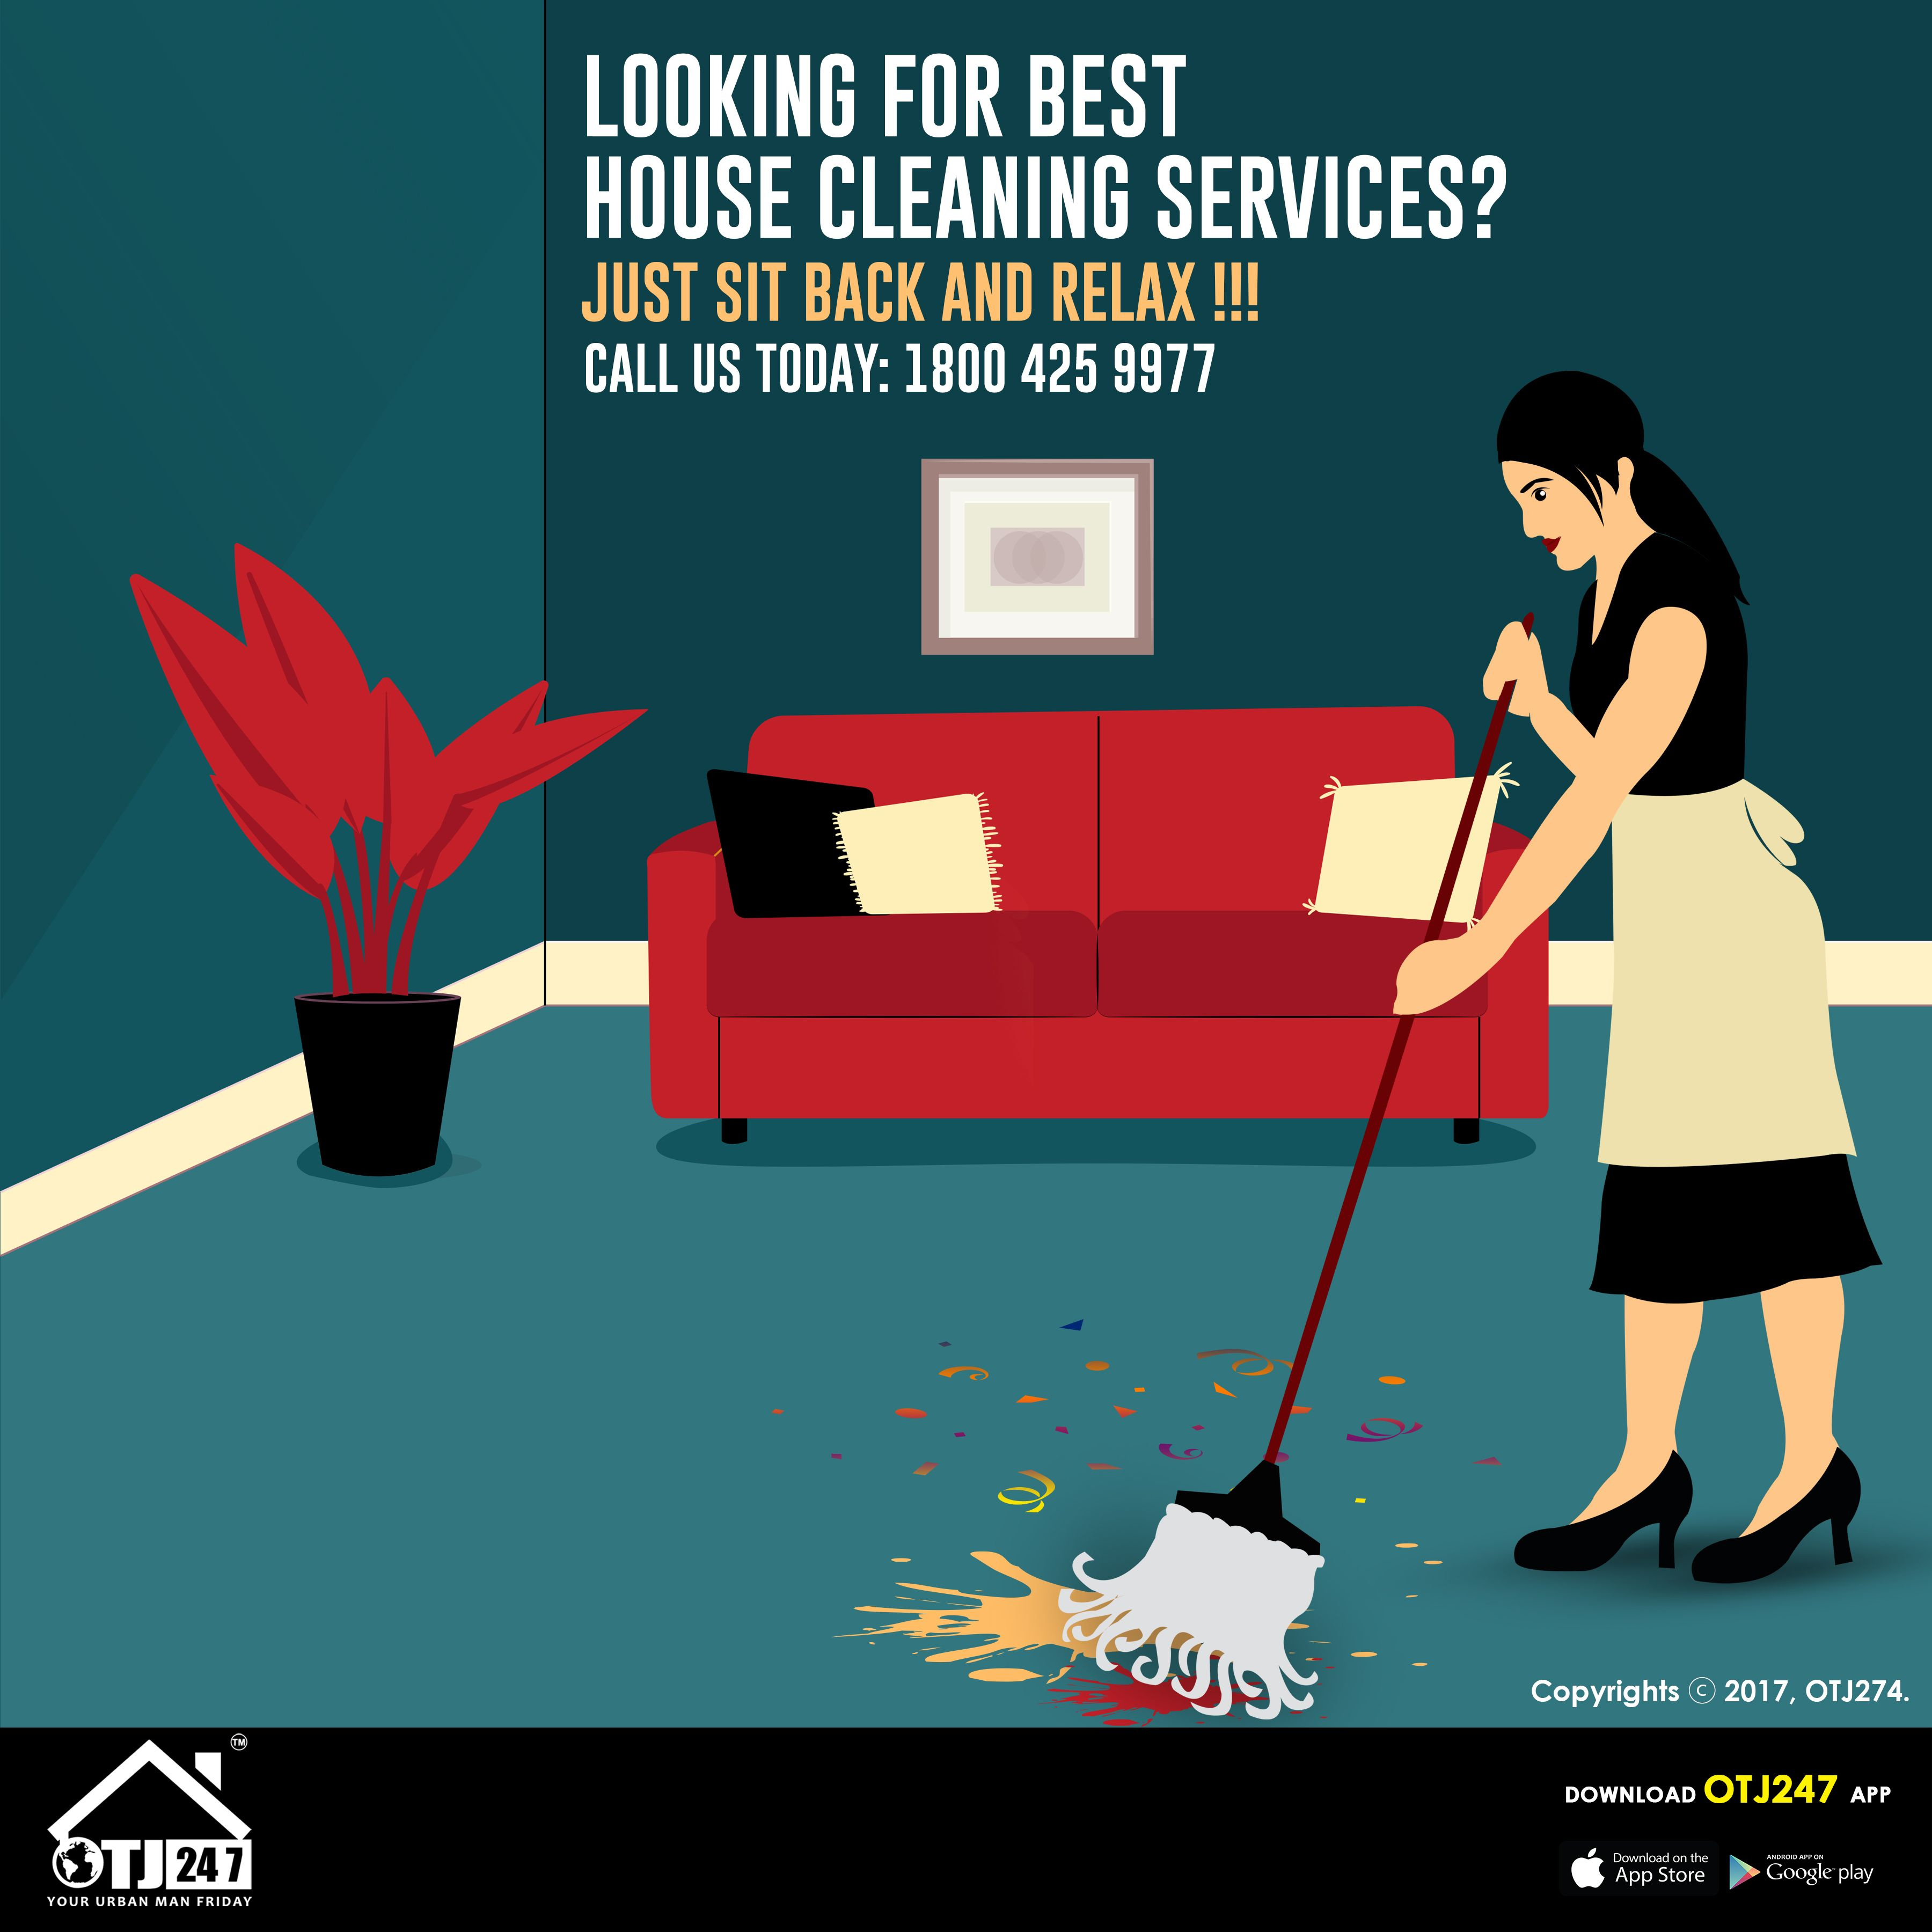 Looking For Best House Cleaning Services Just Sit Back And Relax We Take Care Of Your House Cleaning House Cleaning Services Clean House Cleaning Service